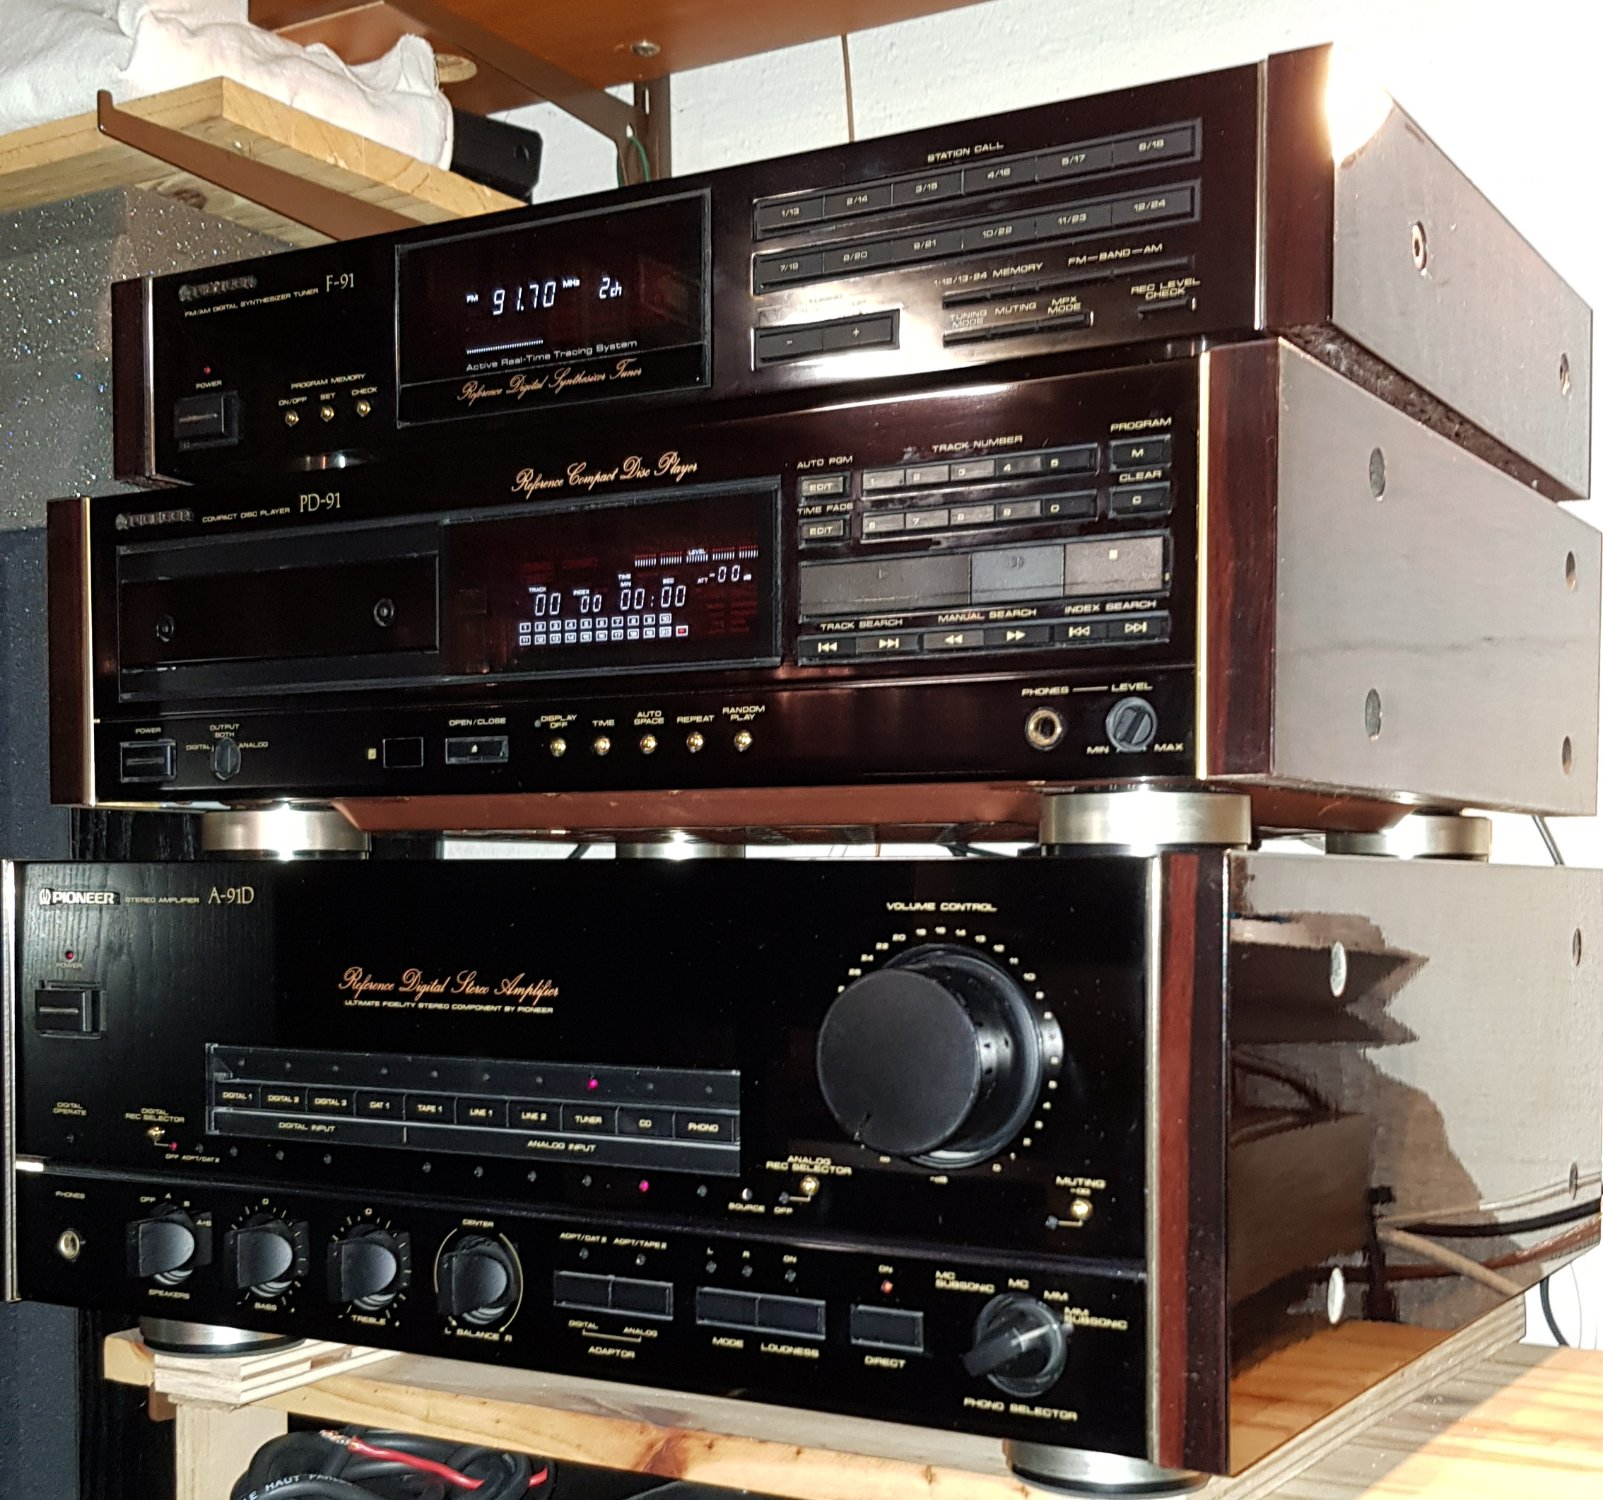 Ensemble Pioneer F-91, PD-91, A-91D